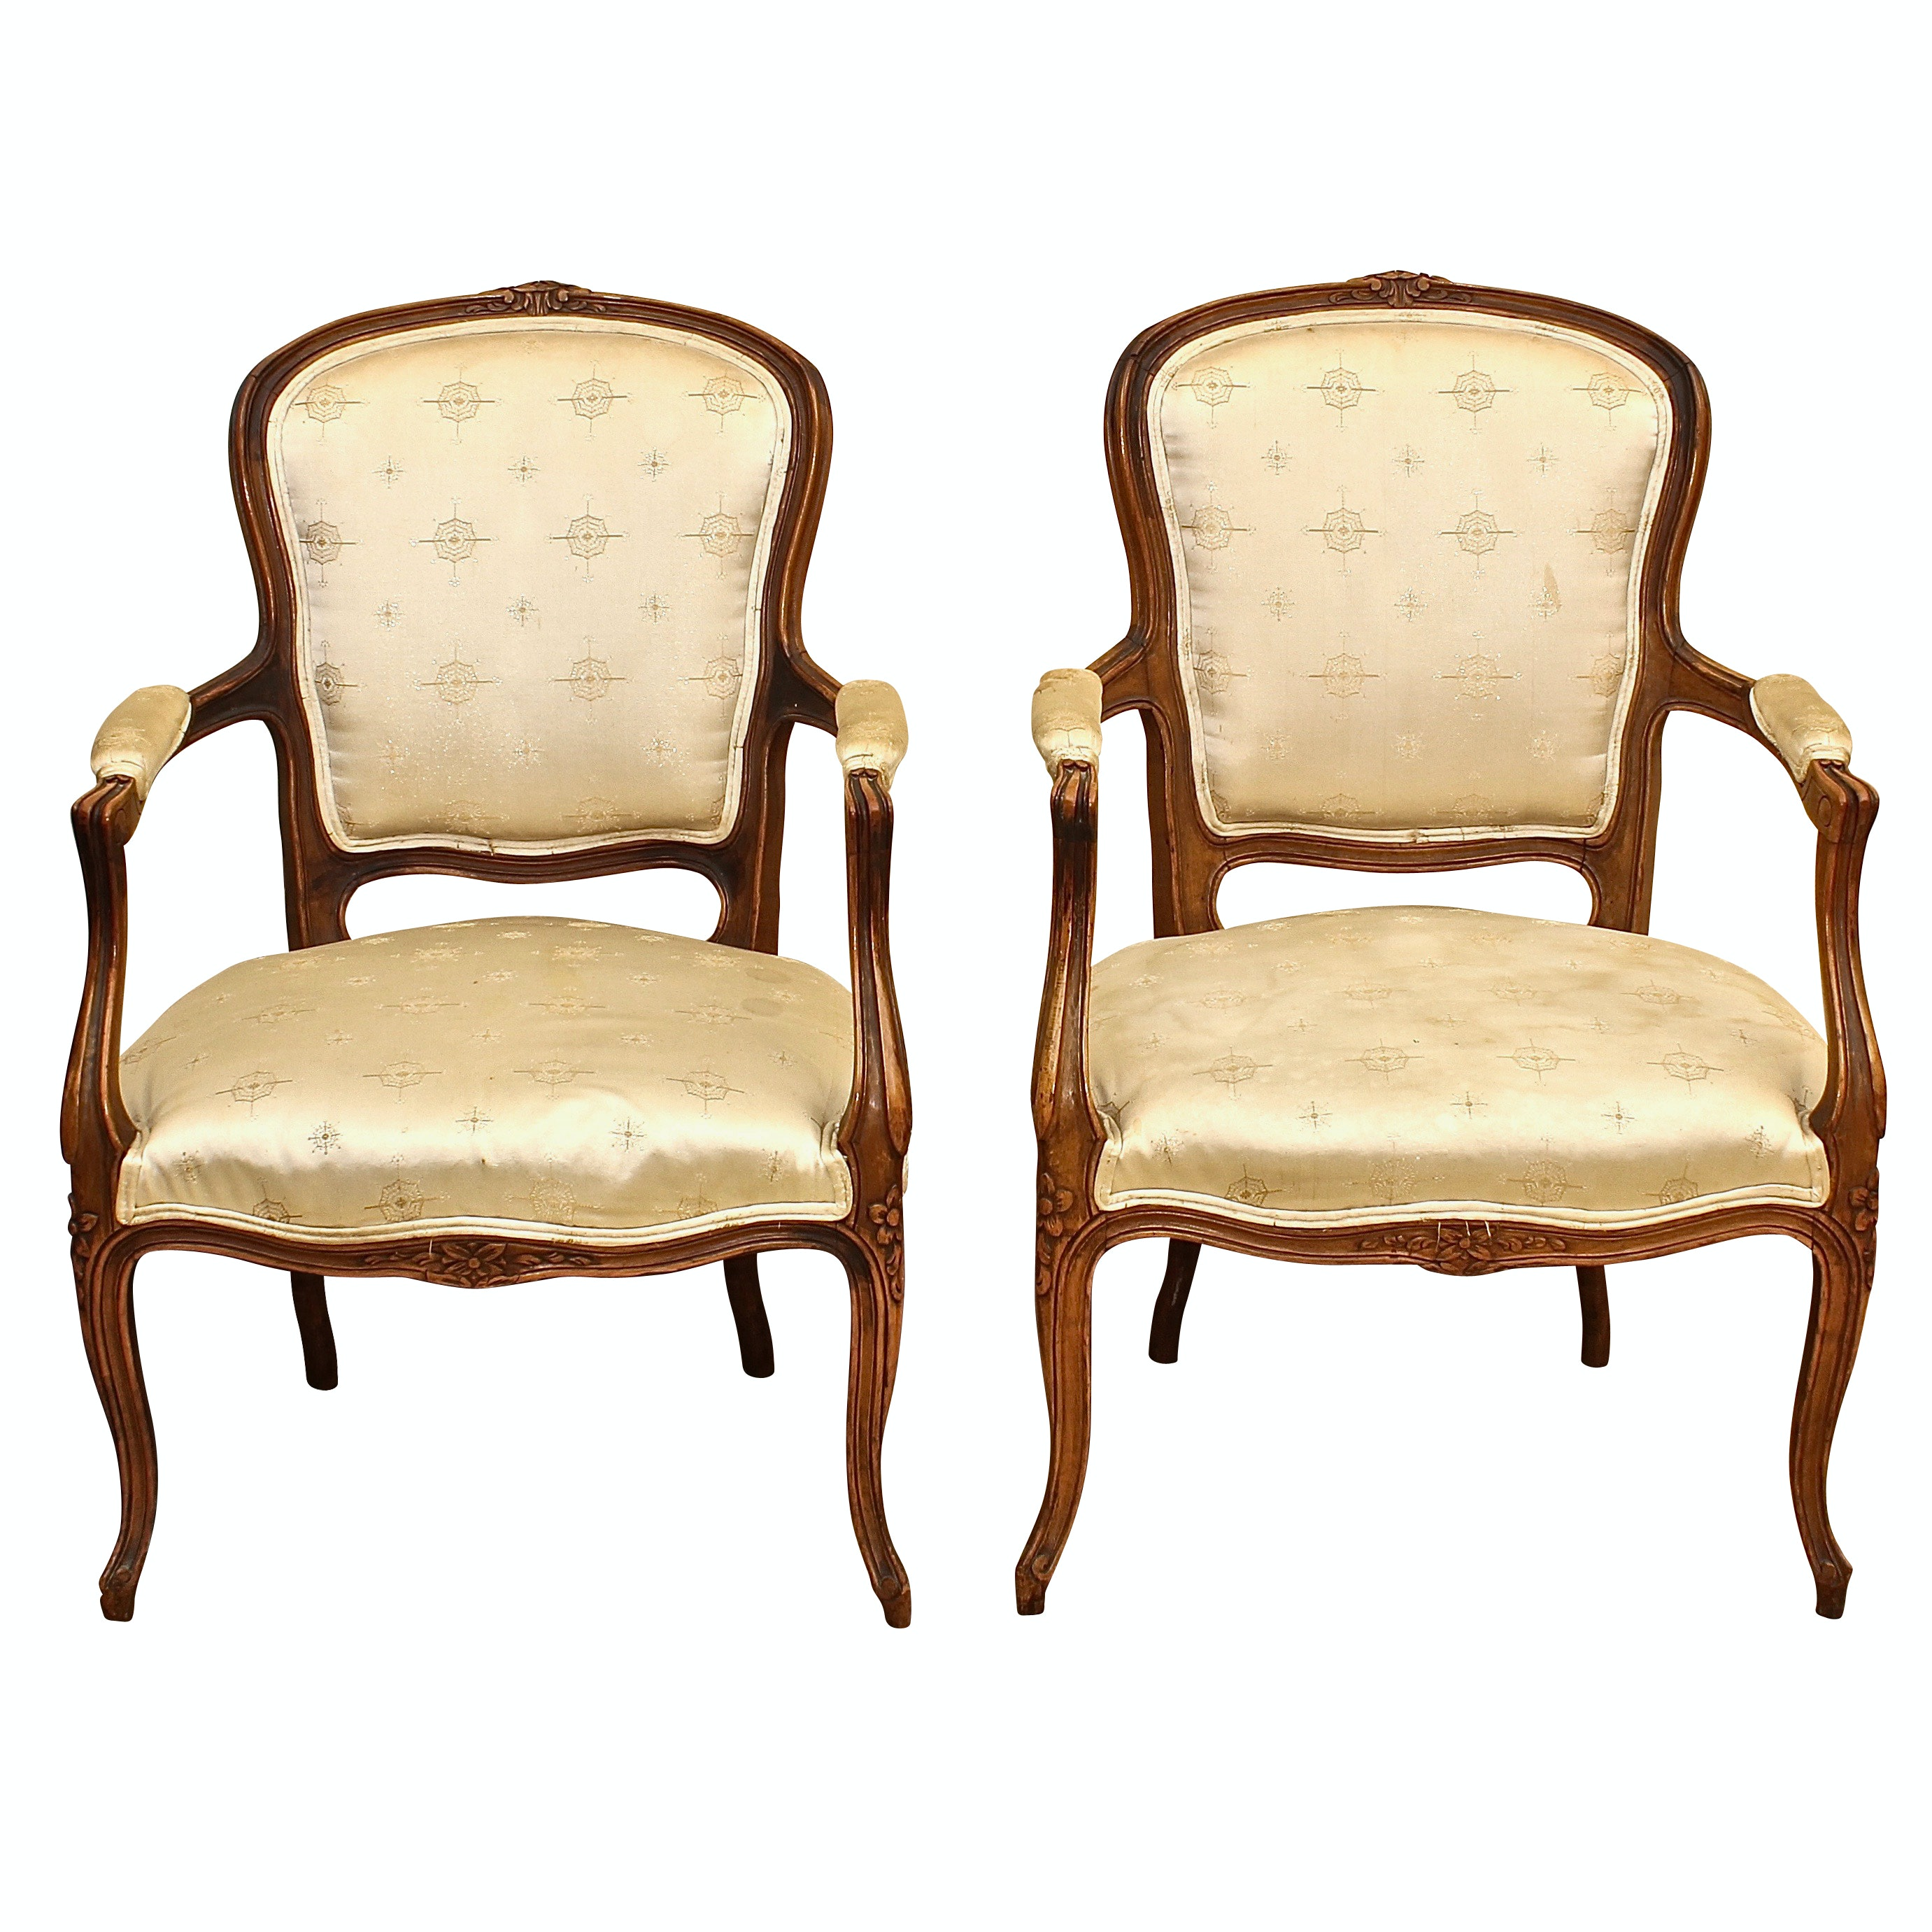 French Provincial Style Fauteuils, Late 20th Century